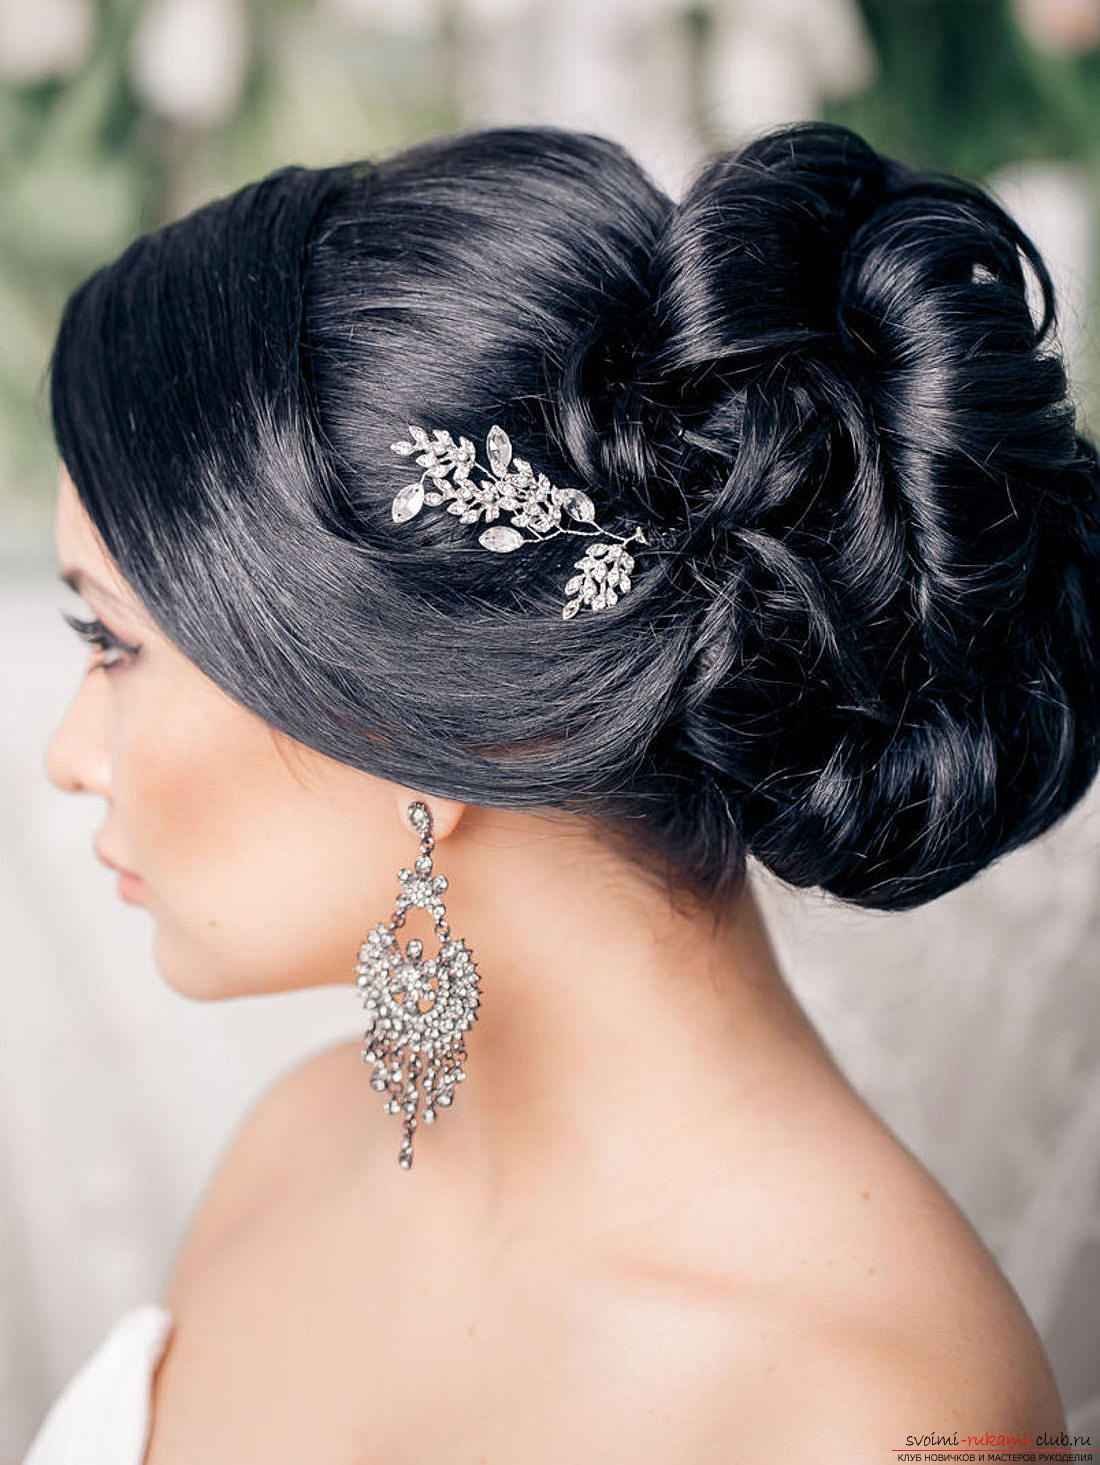 Hairstyles with bangs for the bride. Photo №6